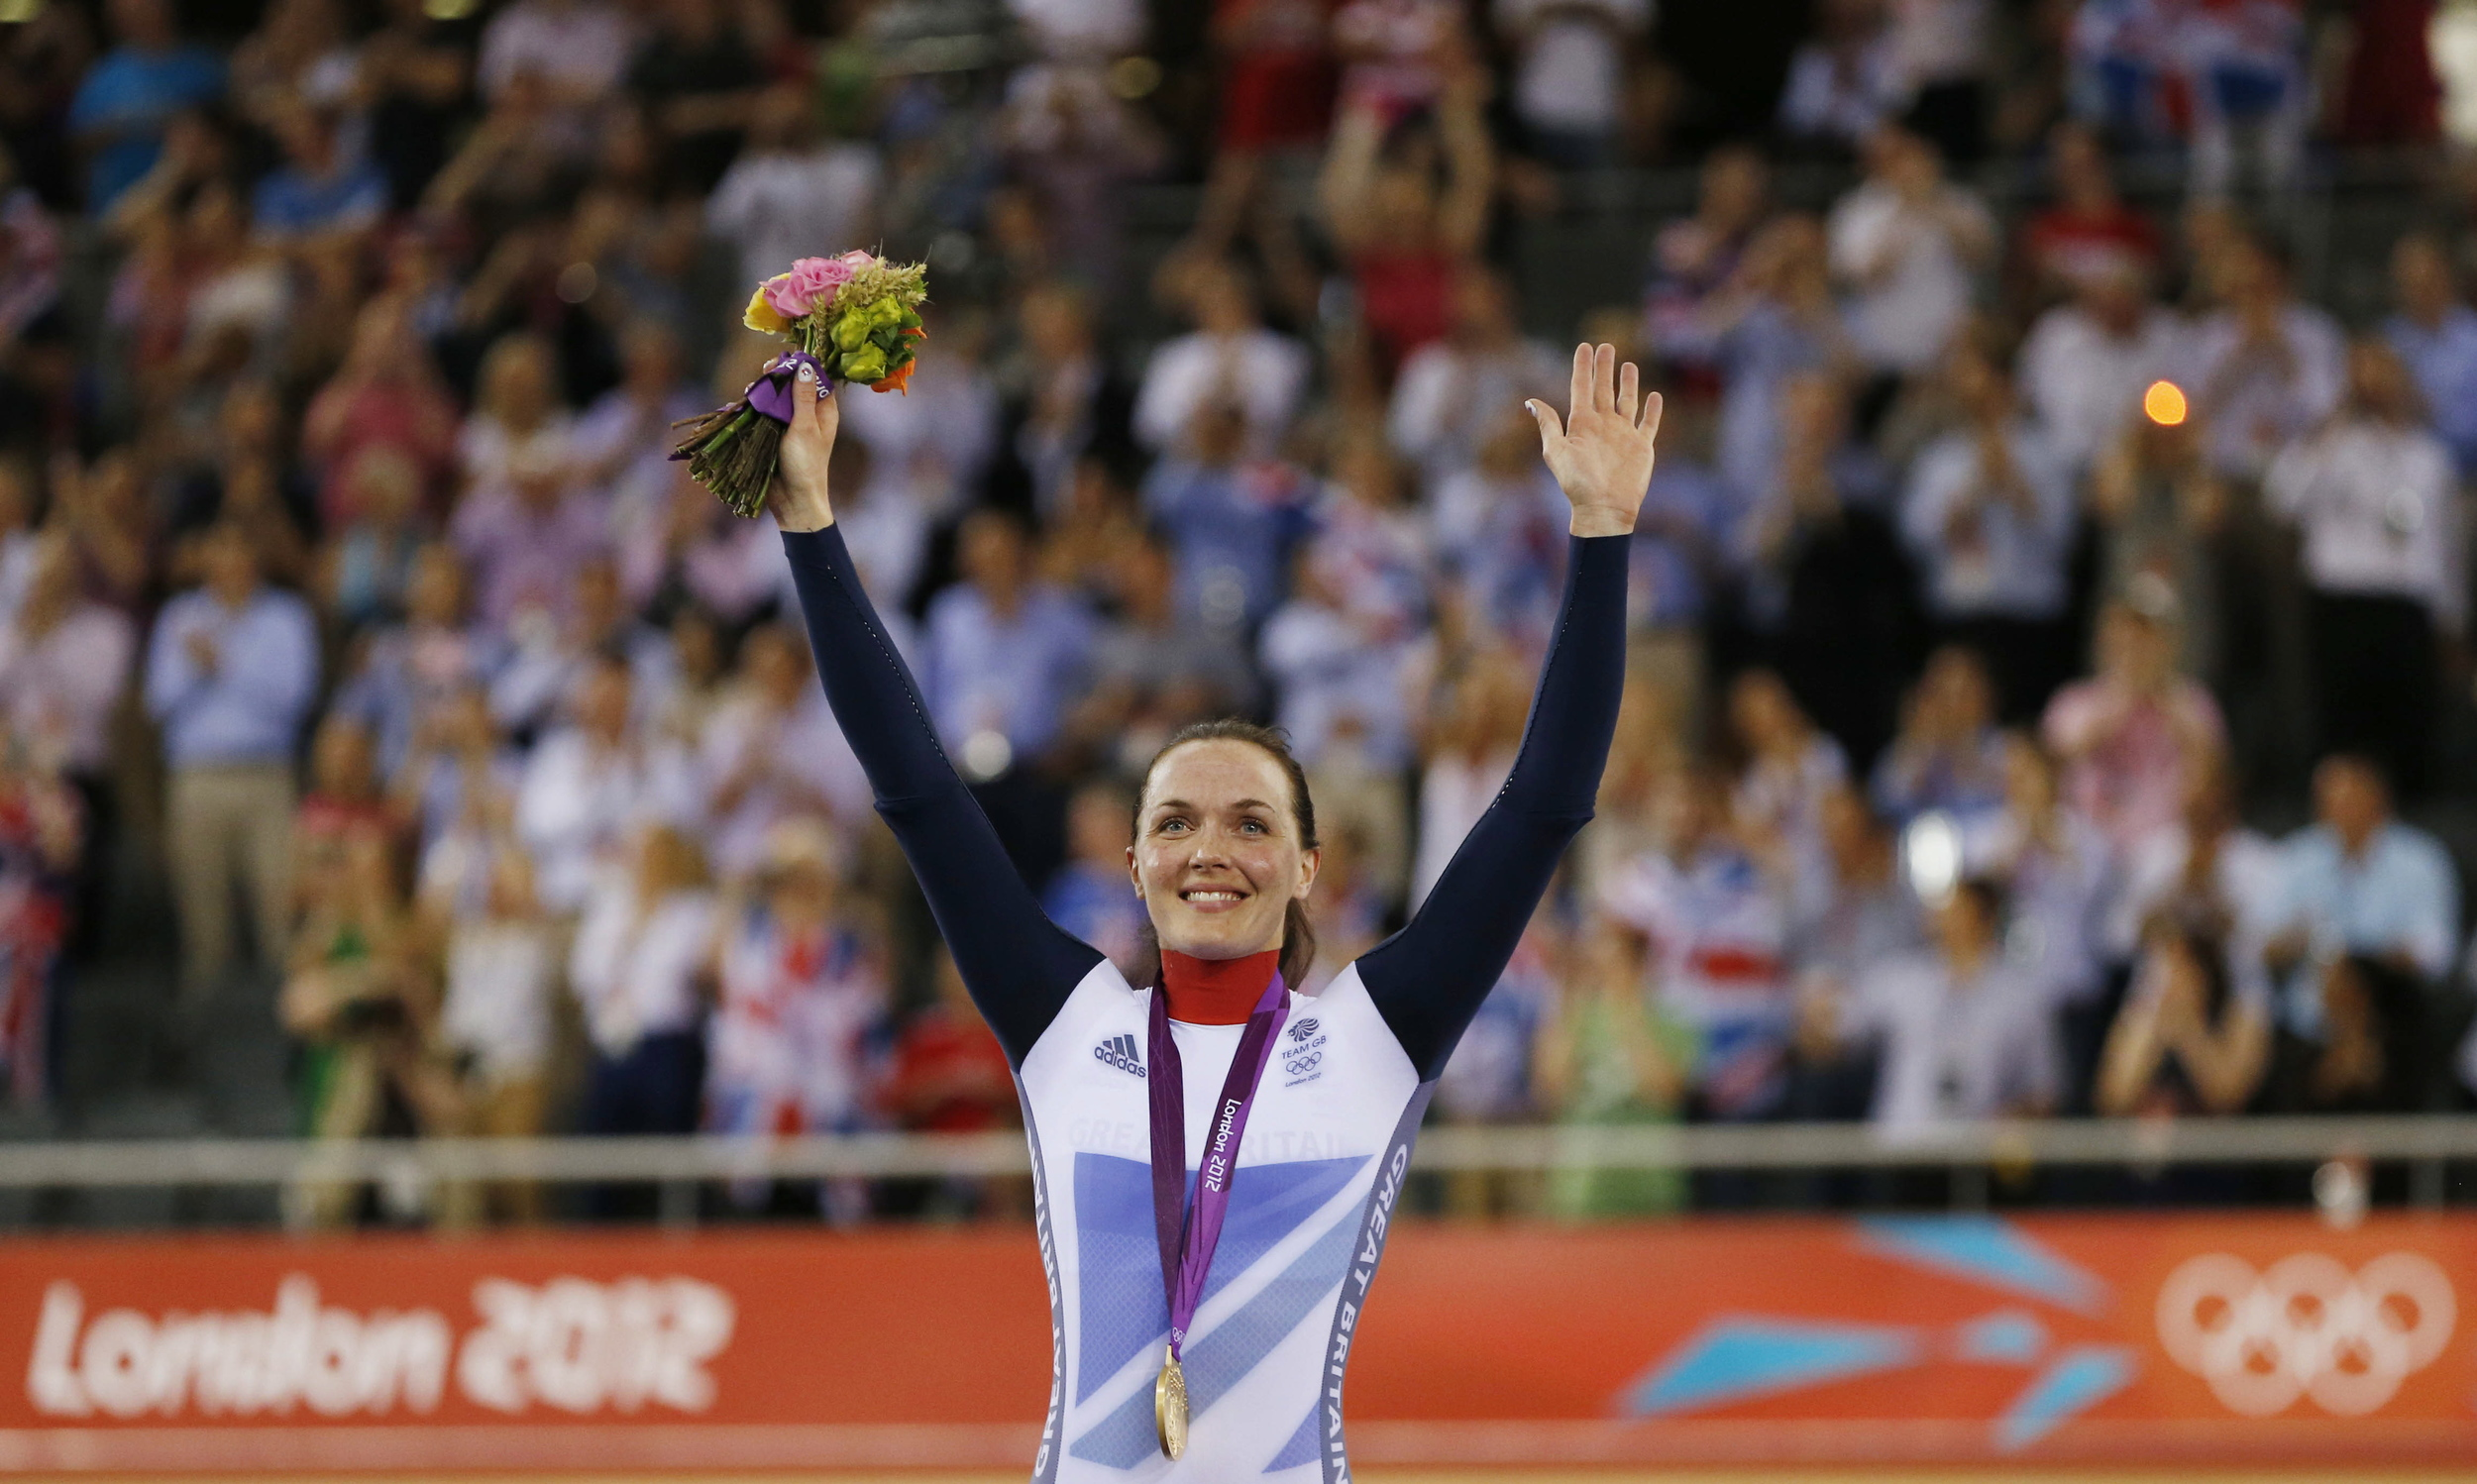 Great Britain's Victoria Pendleton celebrates winning gold in the Women's Keirin at the London 2012 Olympic Games.  Image supplied by Action Images / Andrew Boyers .